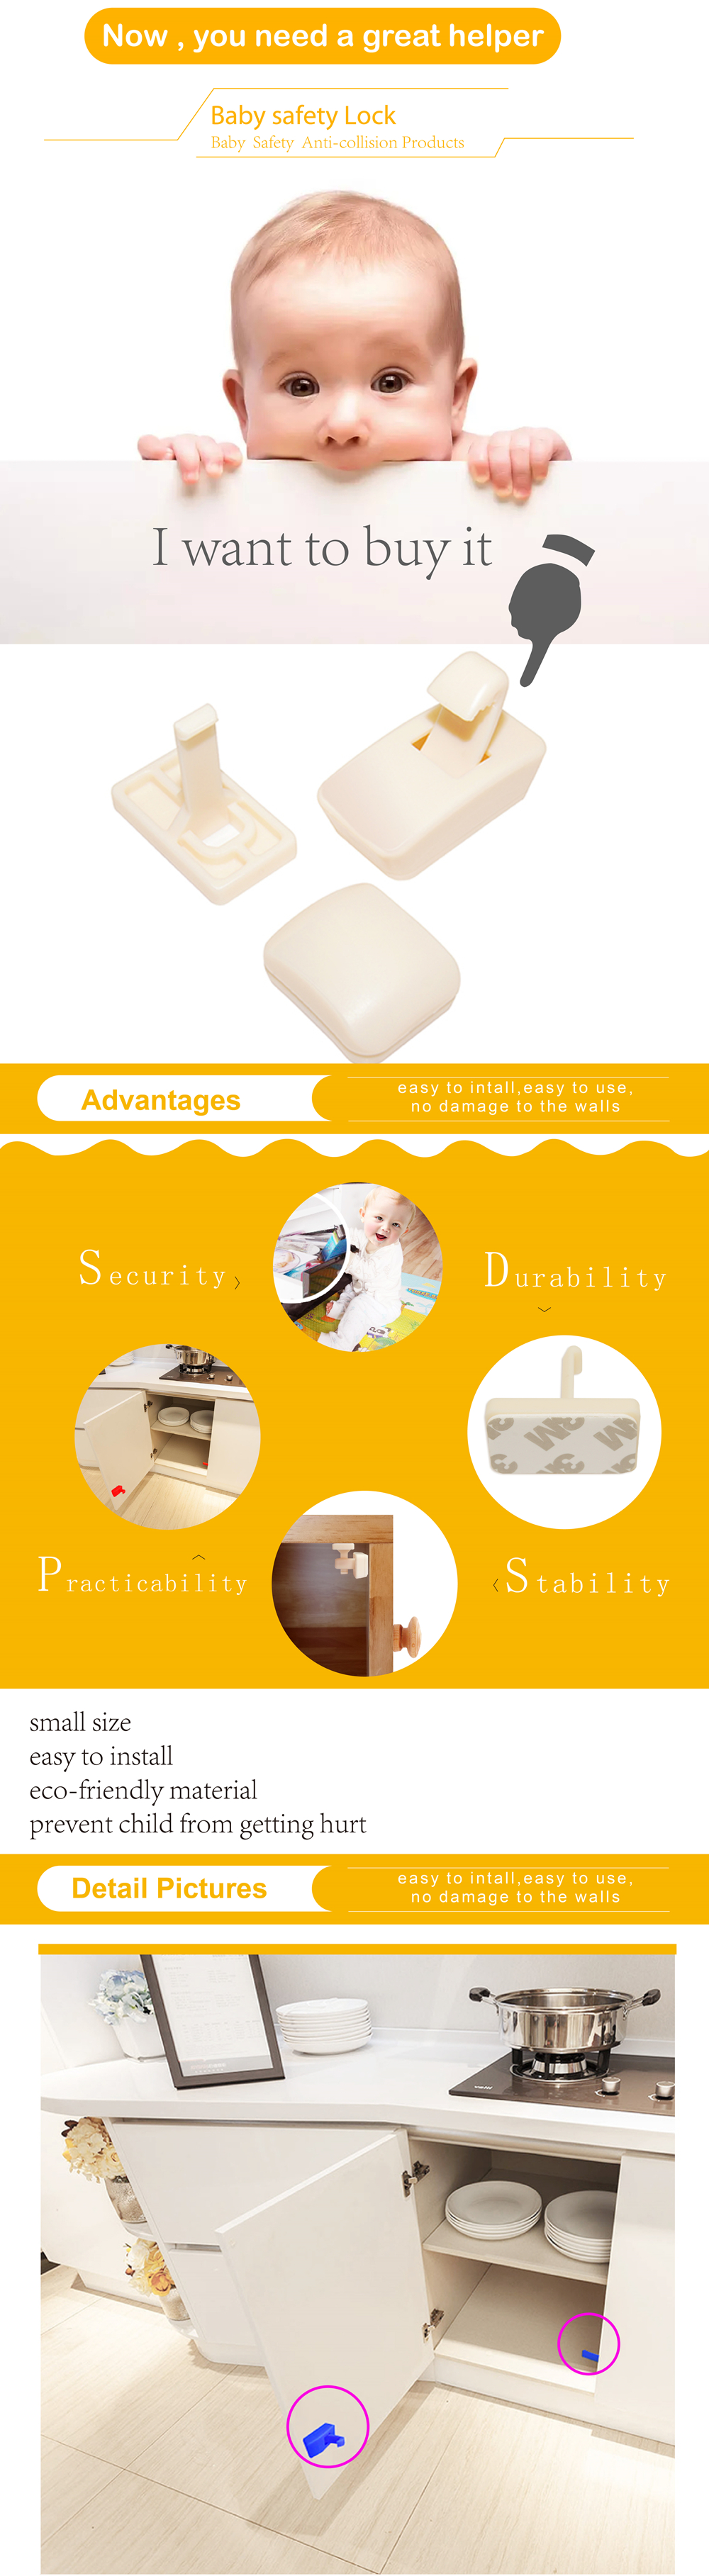 Popular Calish Child Safety Cupboard Locks For Cabinet